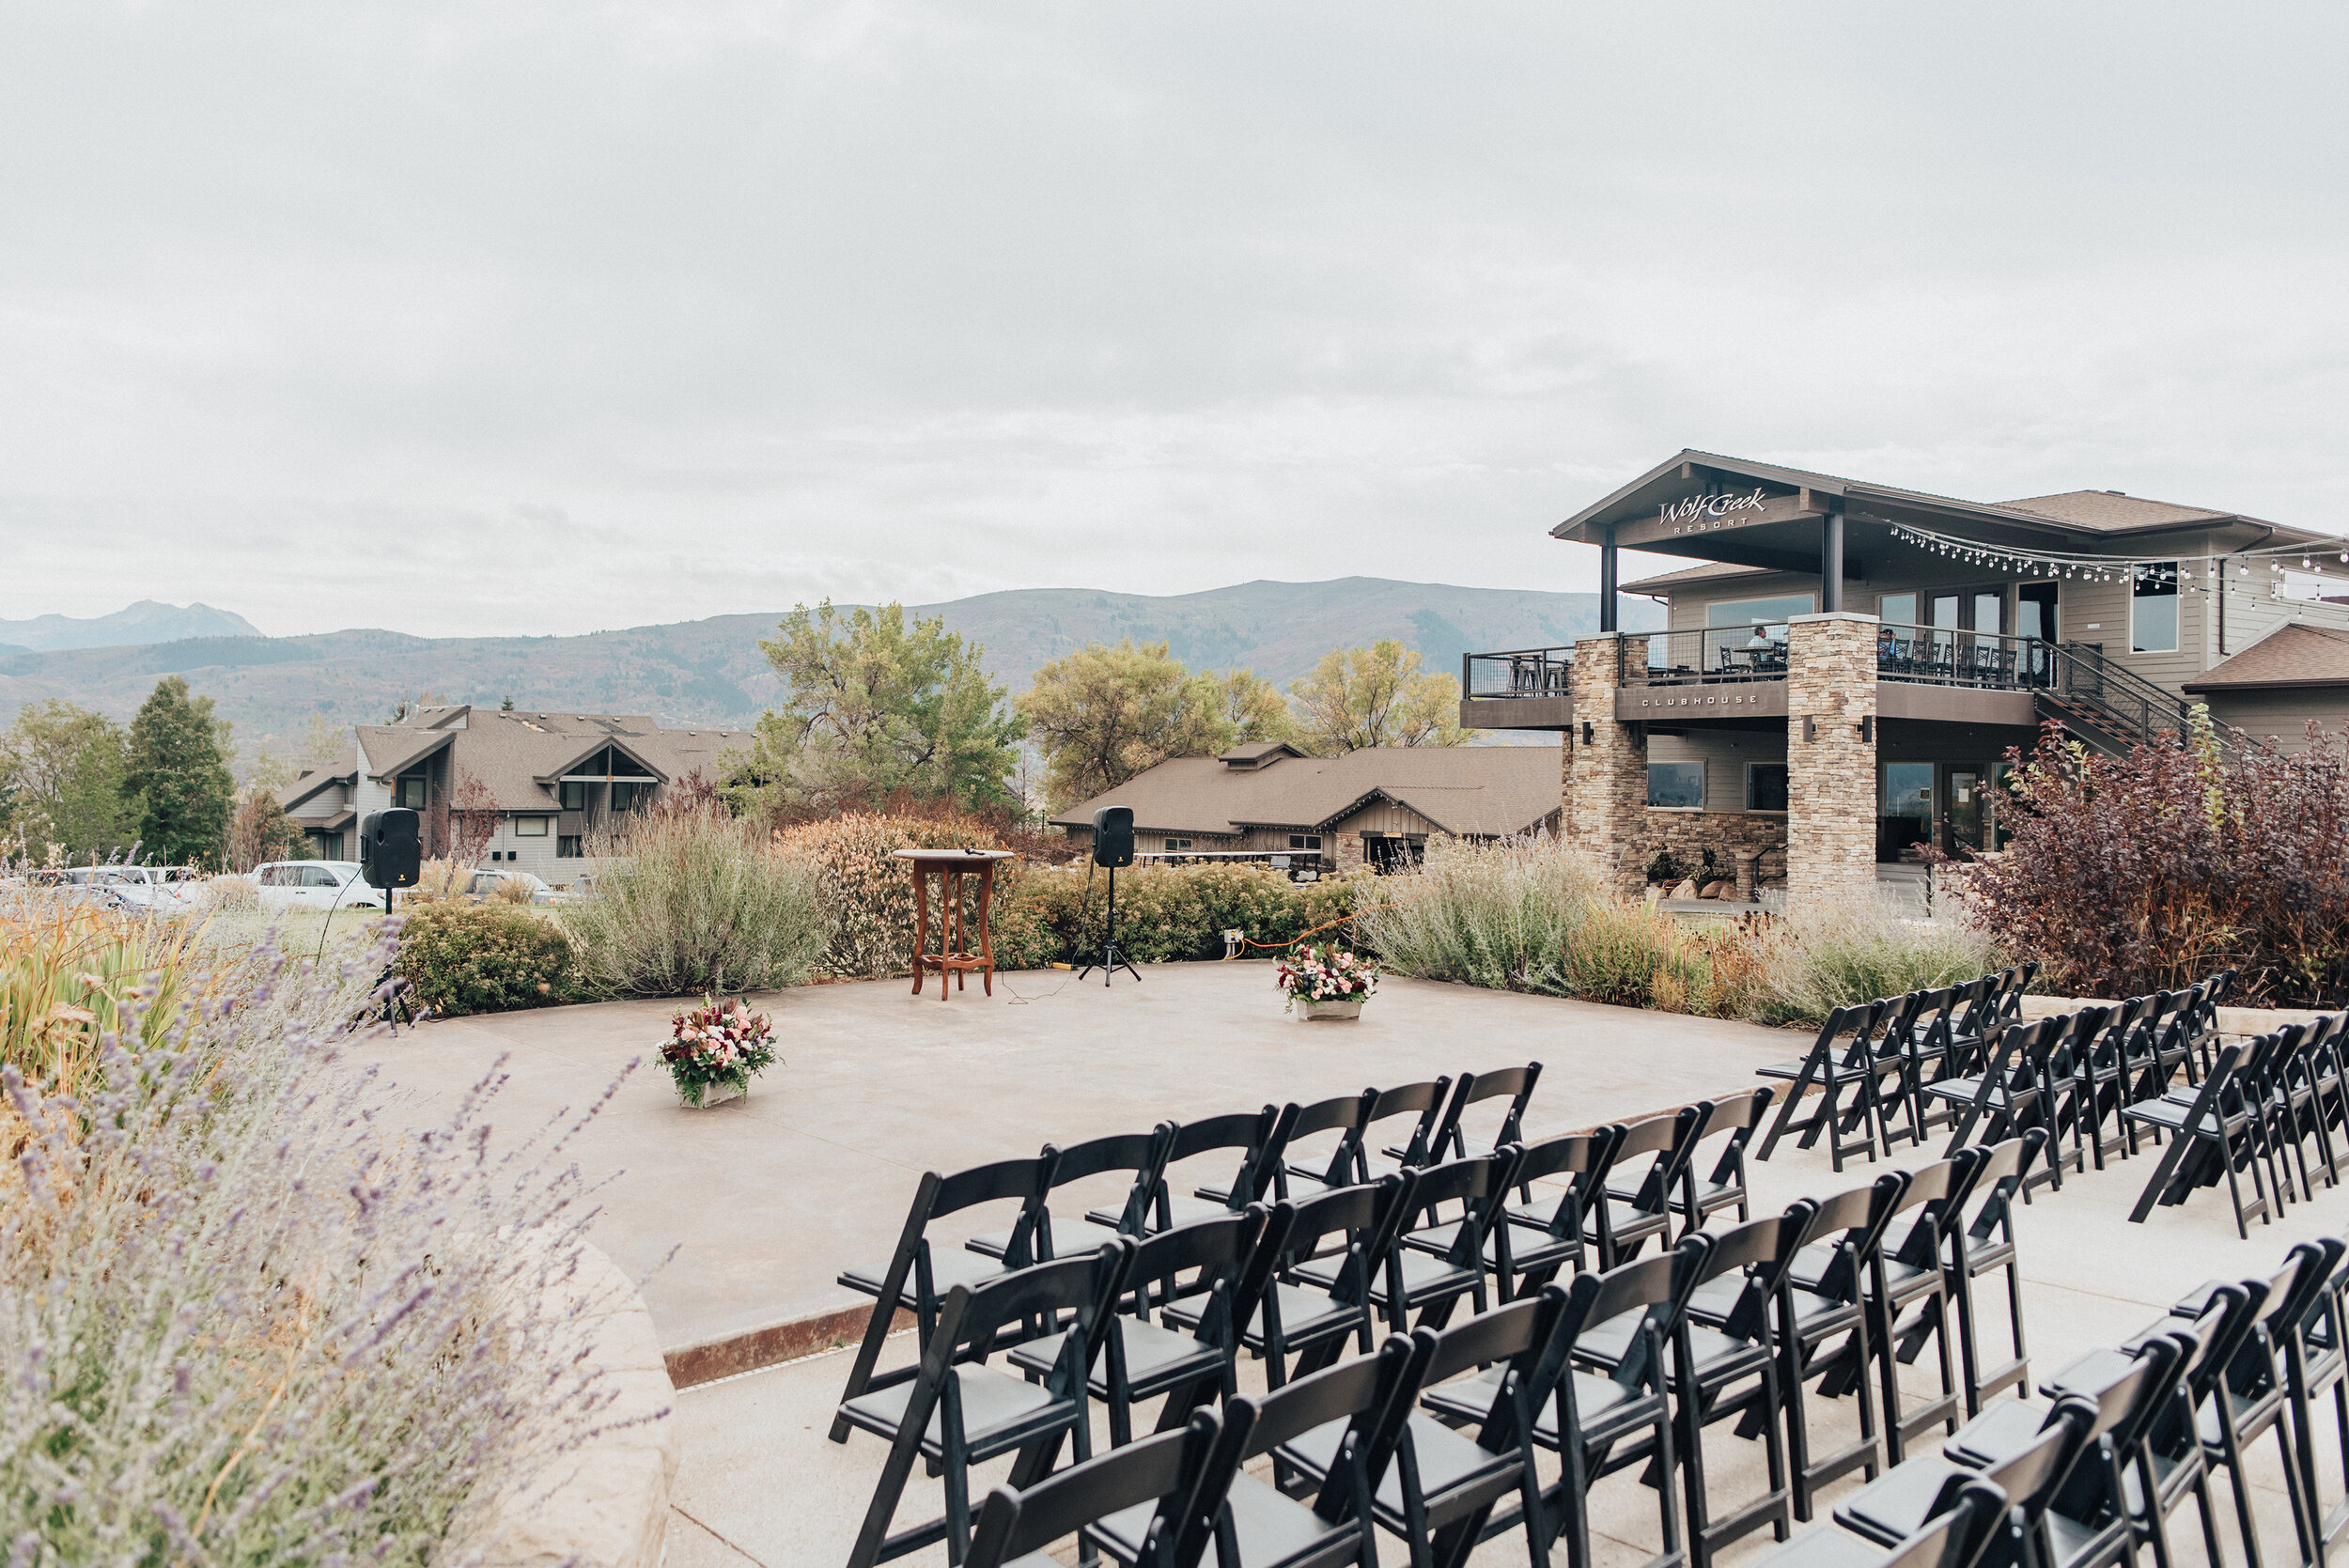 A stunning look of the wedding day ceremony in Logan, Utah by Kristi Alyse Photography. Ceremony background special moment the wedding day Kristi Alyse wedding ceremony inspo wedding details of the day black chairs floral details mountain backdrop wedding aisle #weddinginspo #loganutah #brideandgroom #utahbride #utahweddingphotographer #meaningfulmoment #weddingphotography #northernutahwedding #weddinghairstyles #weddingday #bridals